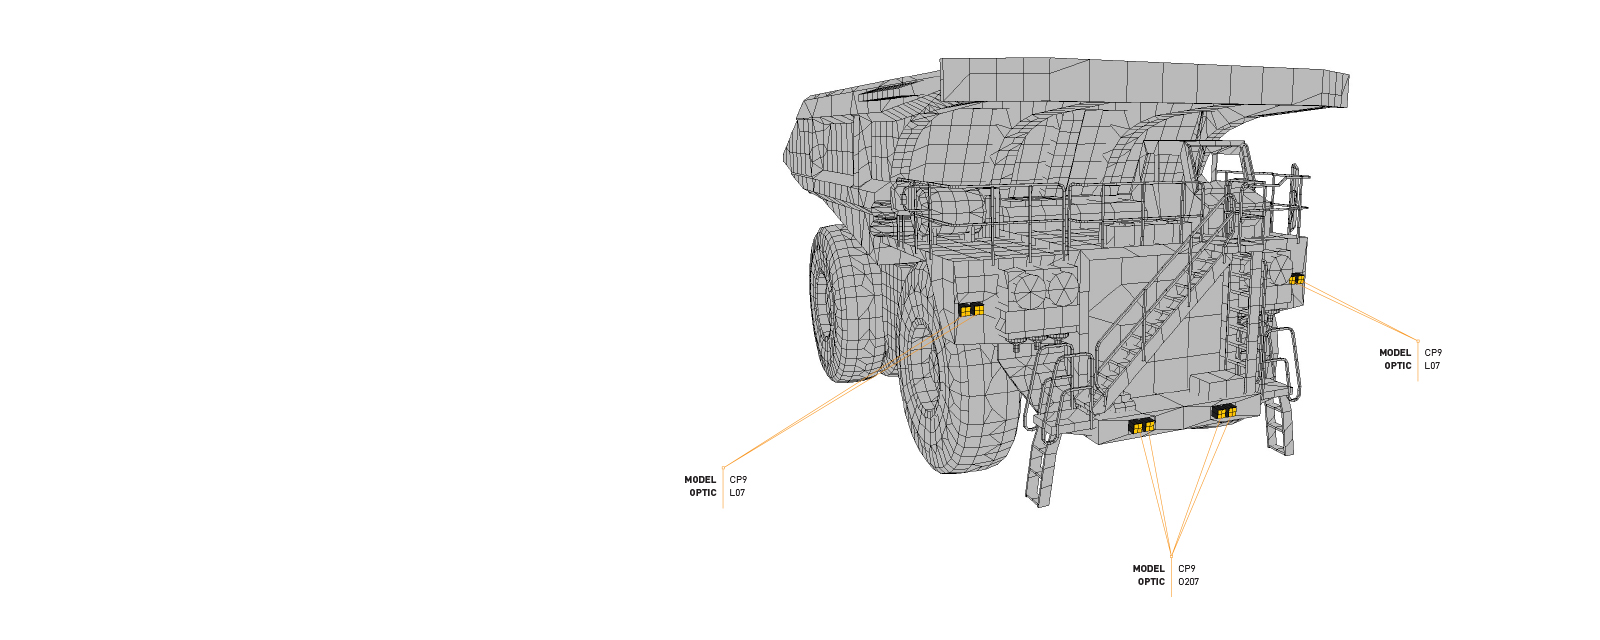 Look through this Lighting Design Simulation Report and explore how the CP9 LED Floodlight transforms the light output of a Caterpillar 793F mining truck